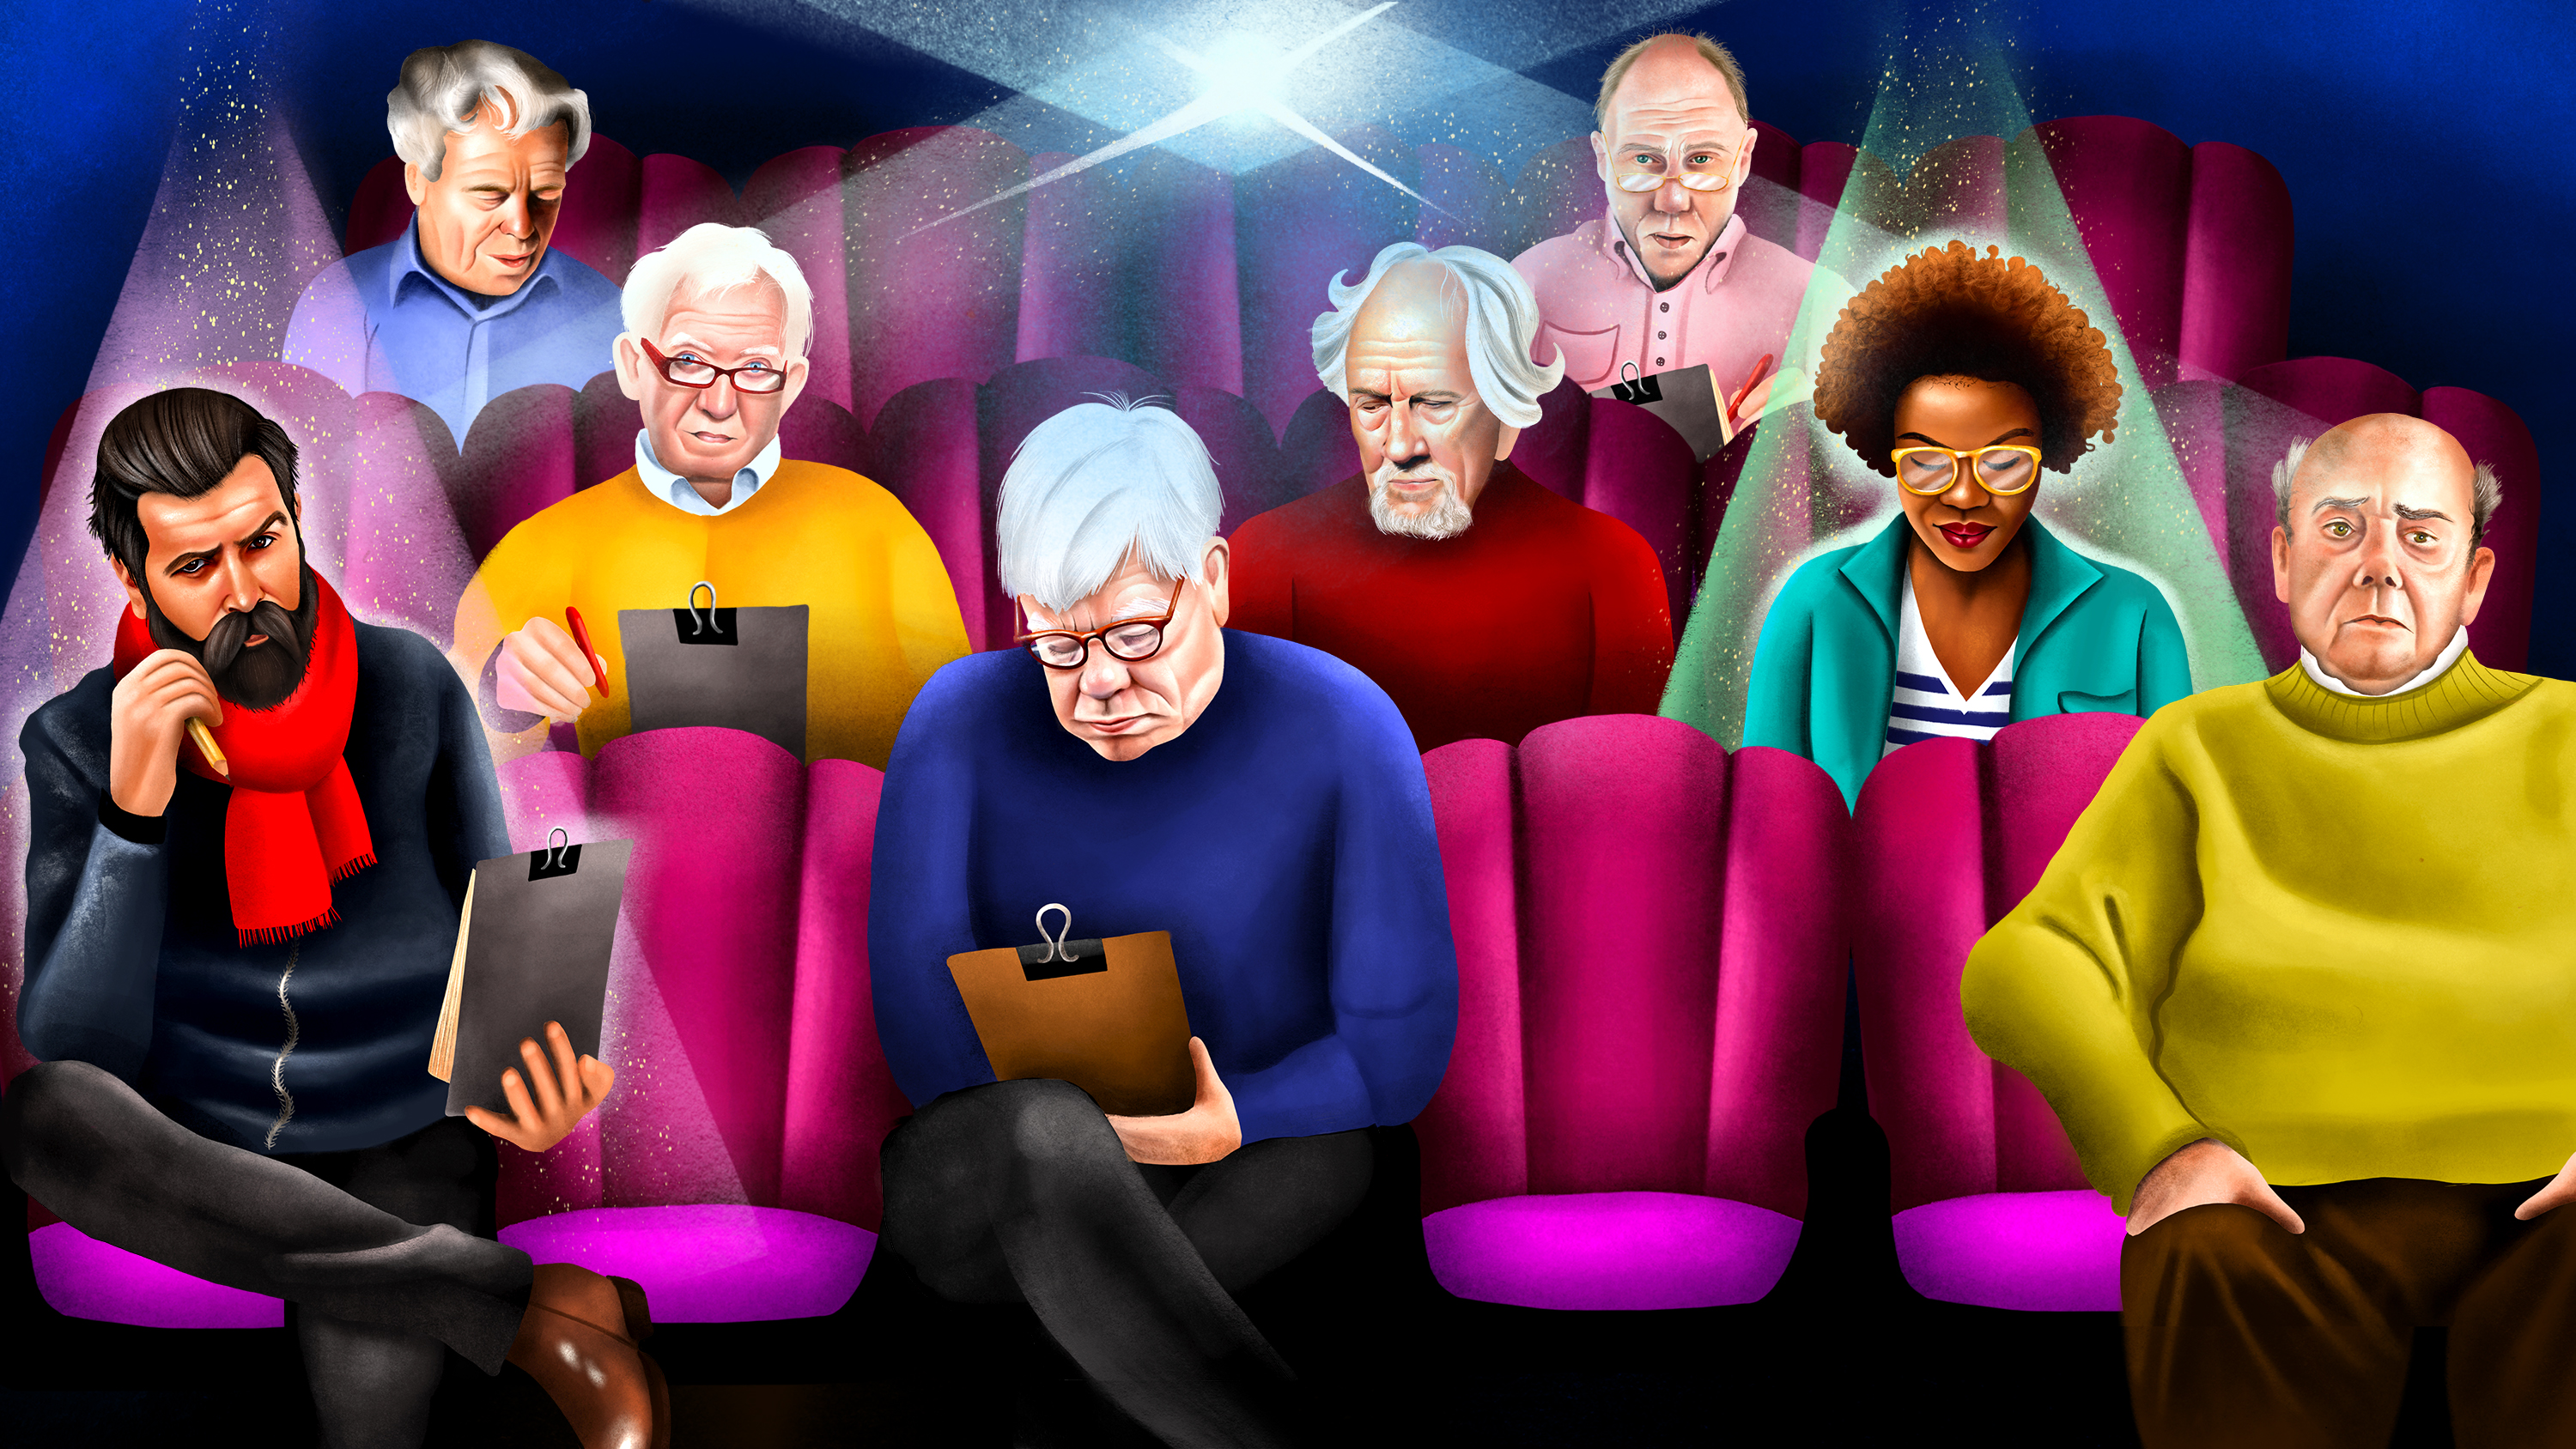 Illustration of a theater full of critics, mostly white men with few people of color.